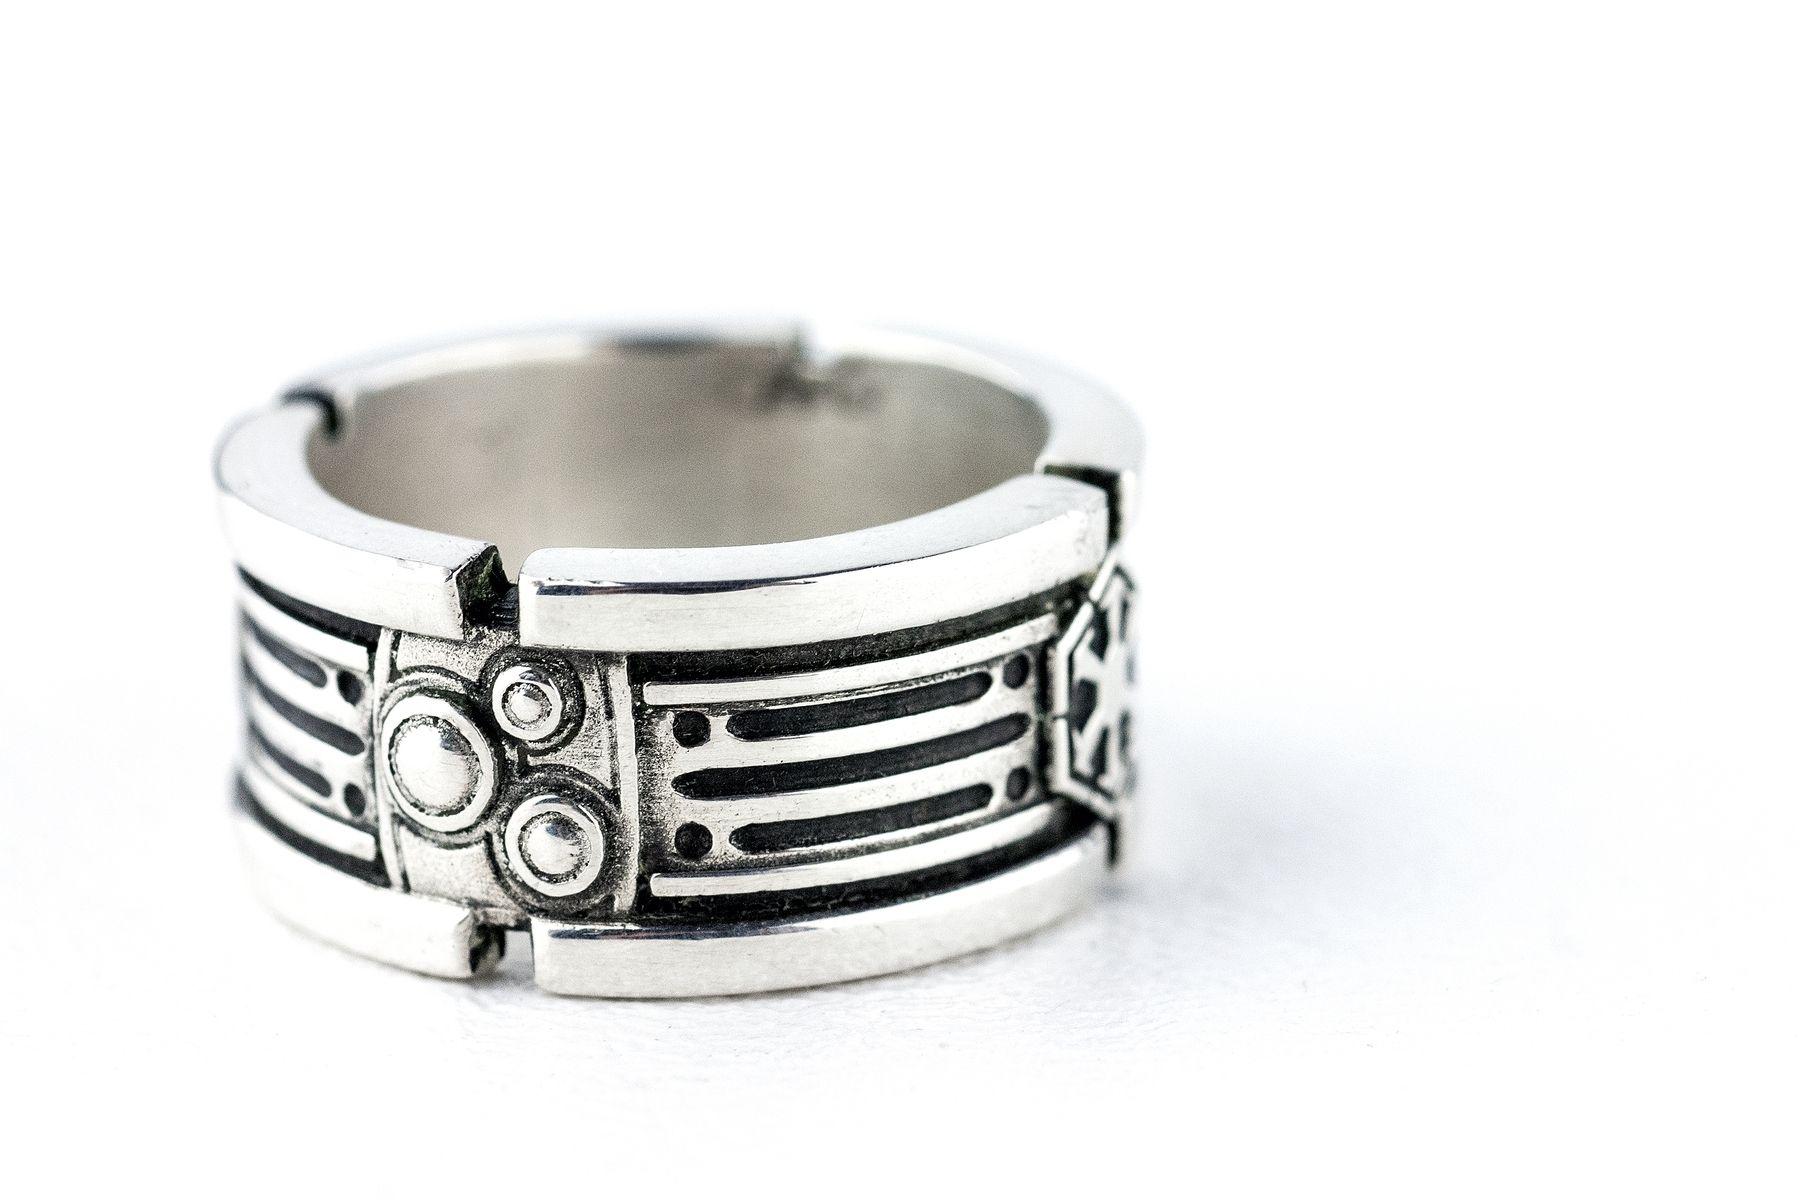 Handmade star wars light saber wedding ring by rock my for Star wars wedding rings